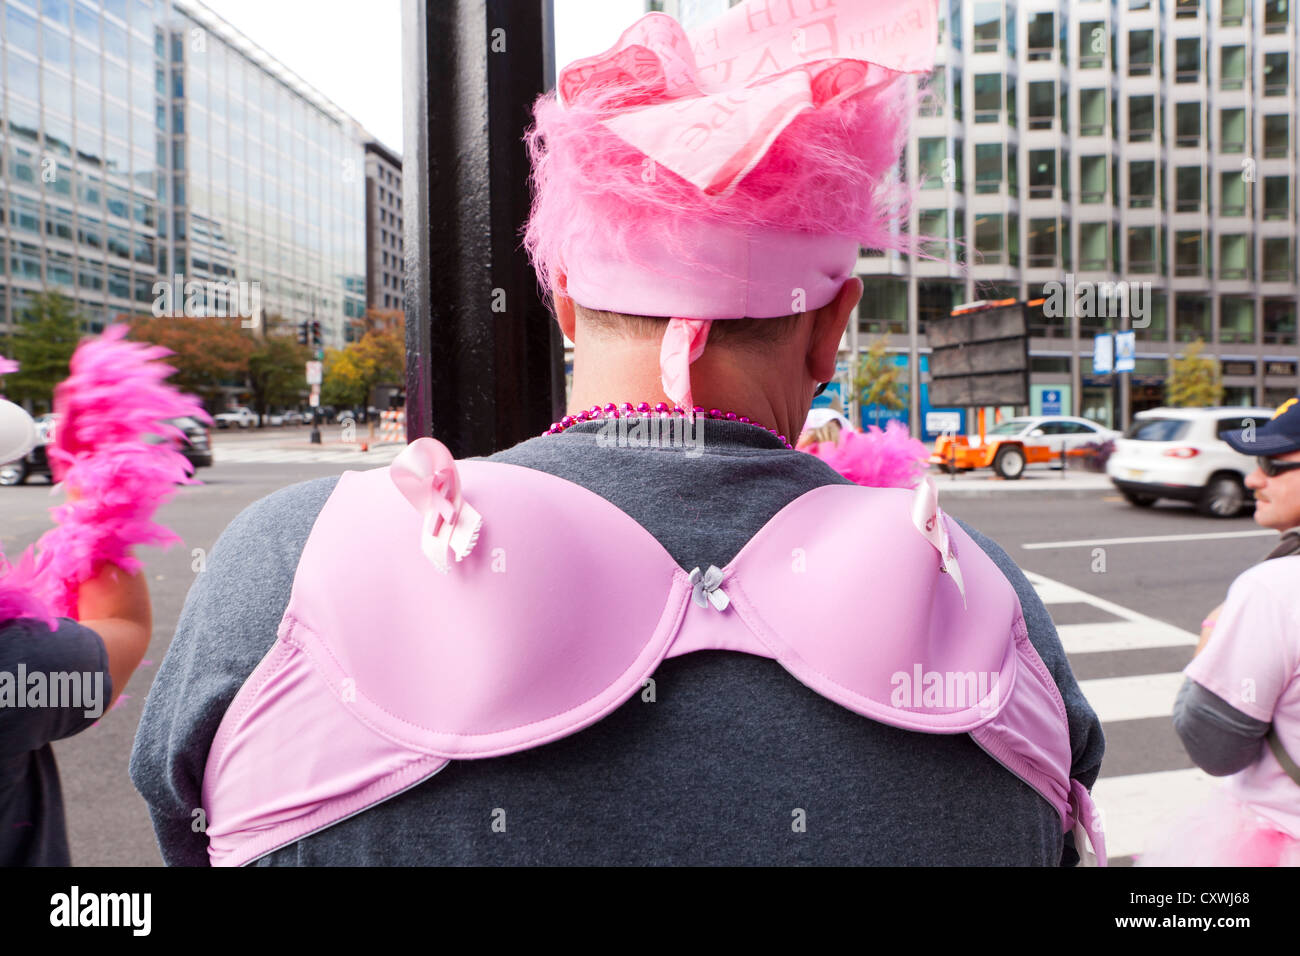 Man dressed in costume at the Susan G. Komen Race for the Cure - Washington, DC - Stock Image